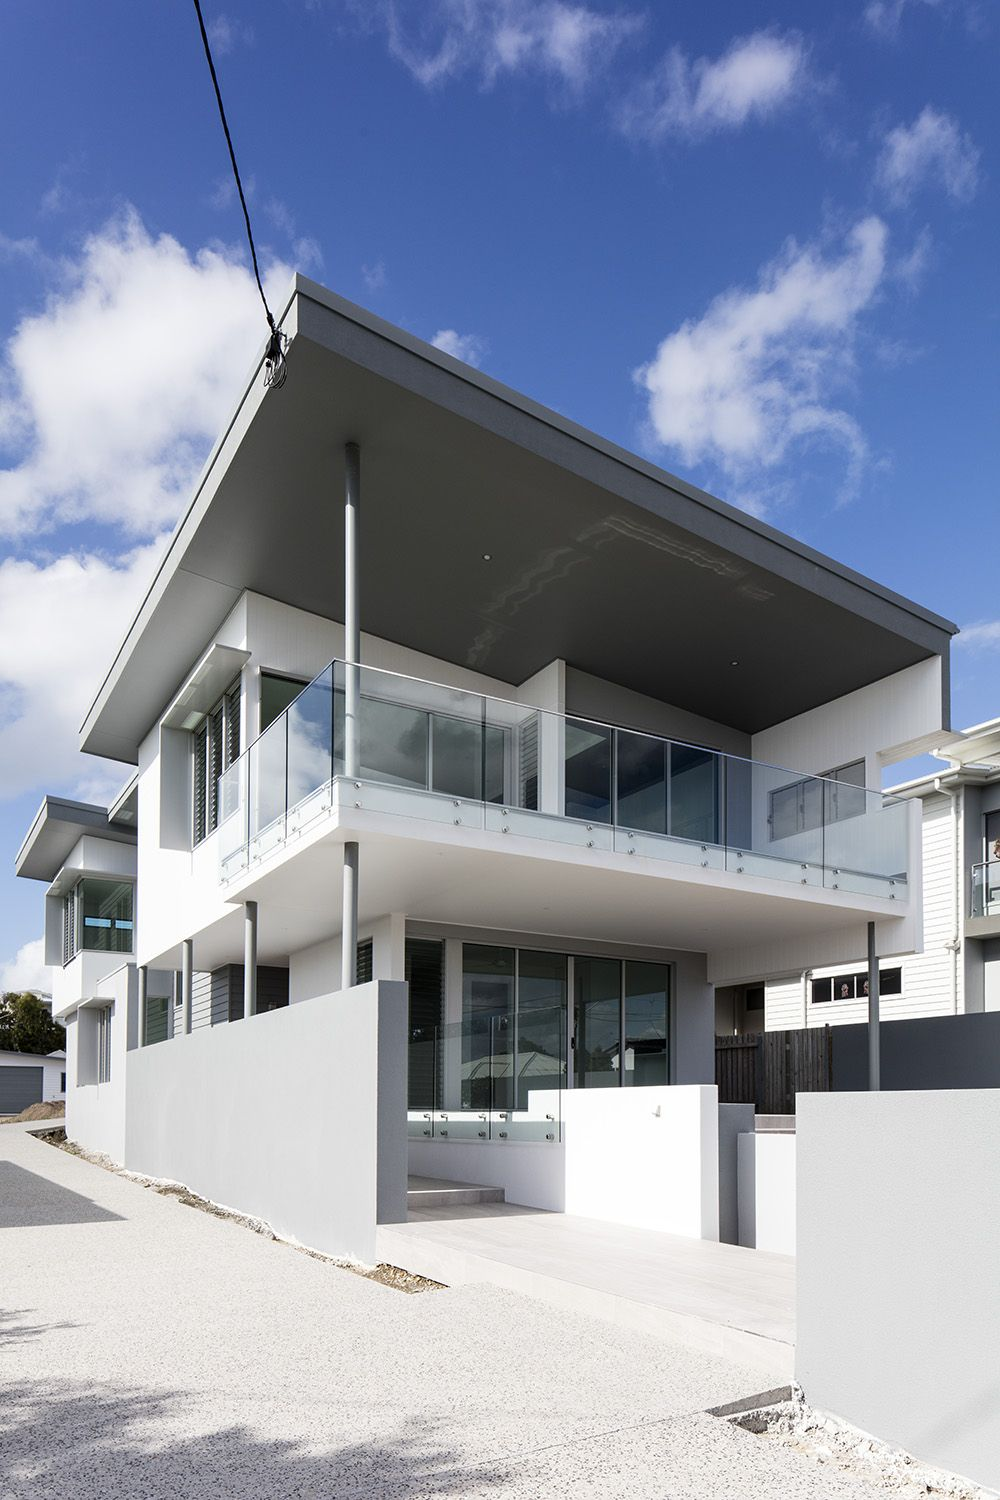 Custom home design by immackulate designer homes the kings beach project located on sunshine coast qld australia also rh pinterest